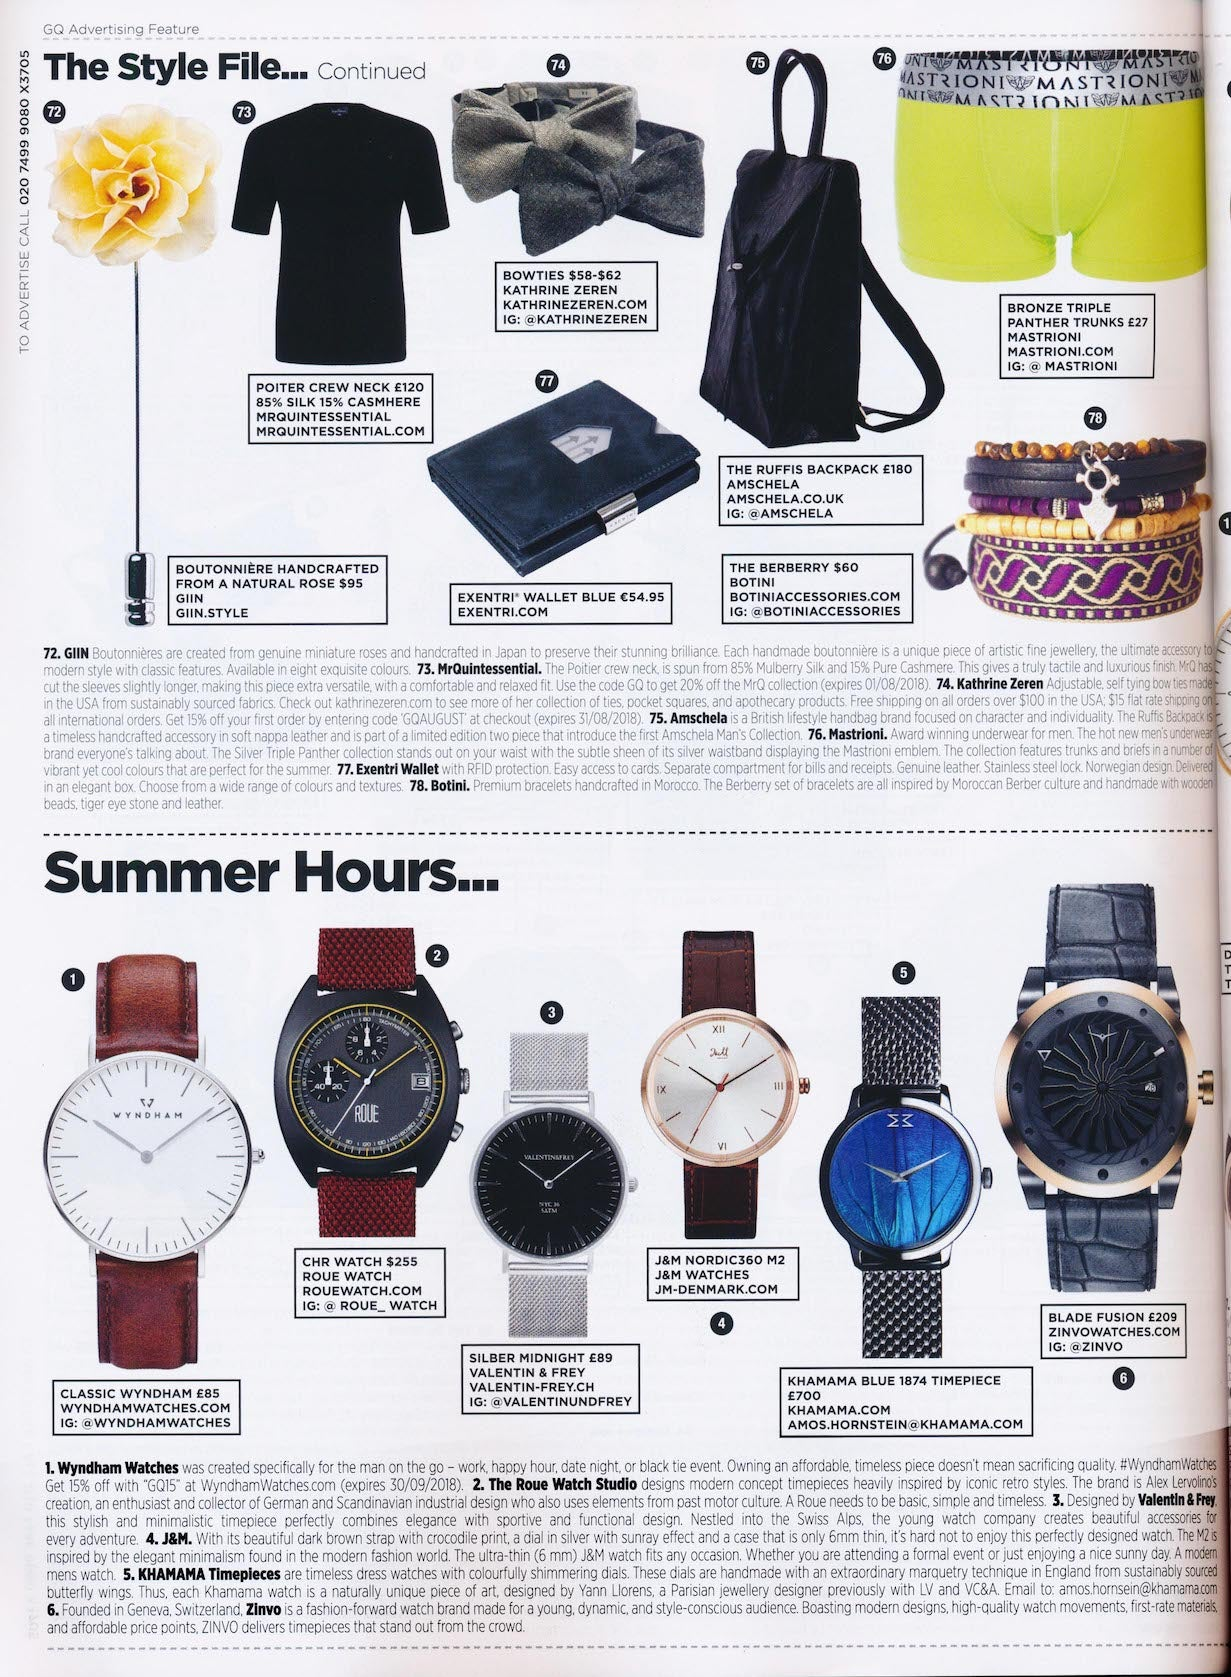 KHAMAMA Timepiece 1874 featured in British GQ August 2018 - Gentleman's Quarterly. KHAMAMA Timepieces are timeless dress watches with colourfully shimmering dials. These dials are handmade with an extraordinary marquetry technique in England from sustainably sourced butterfly wings. Thus, each KHAMAMA watch is a naturally unique piece of art, designed by Yann Llorens, a Parisian jewellery designer previously with LV and VC&A. Email to: Amos.hornstein@khamama.com